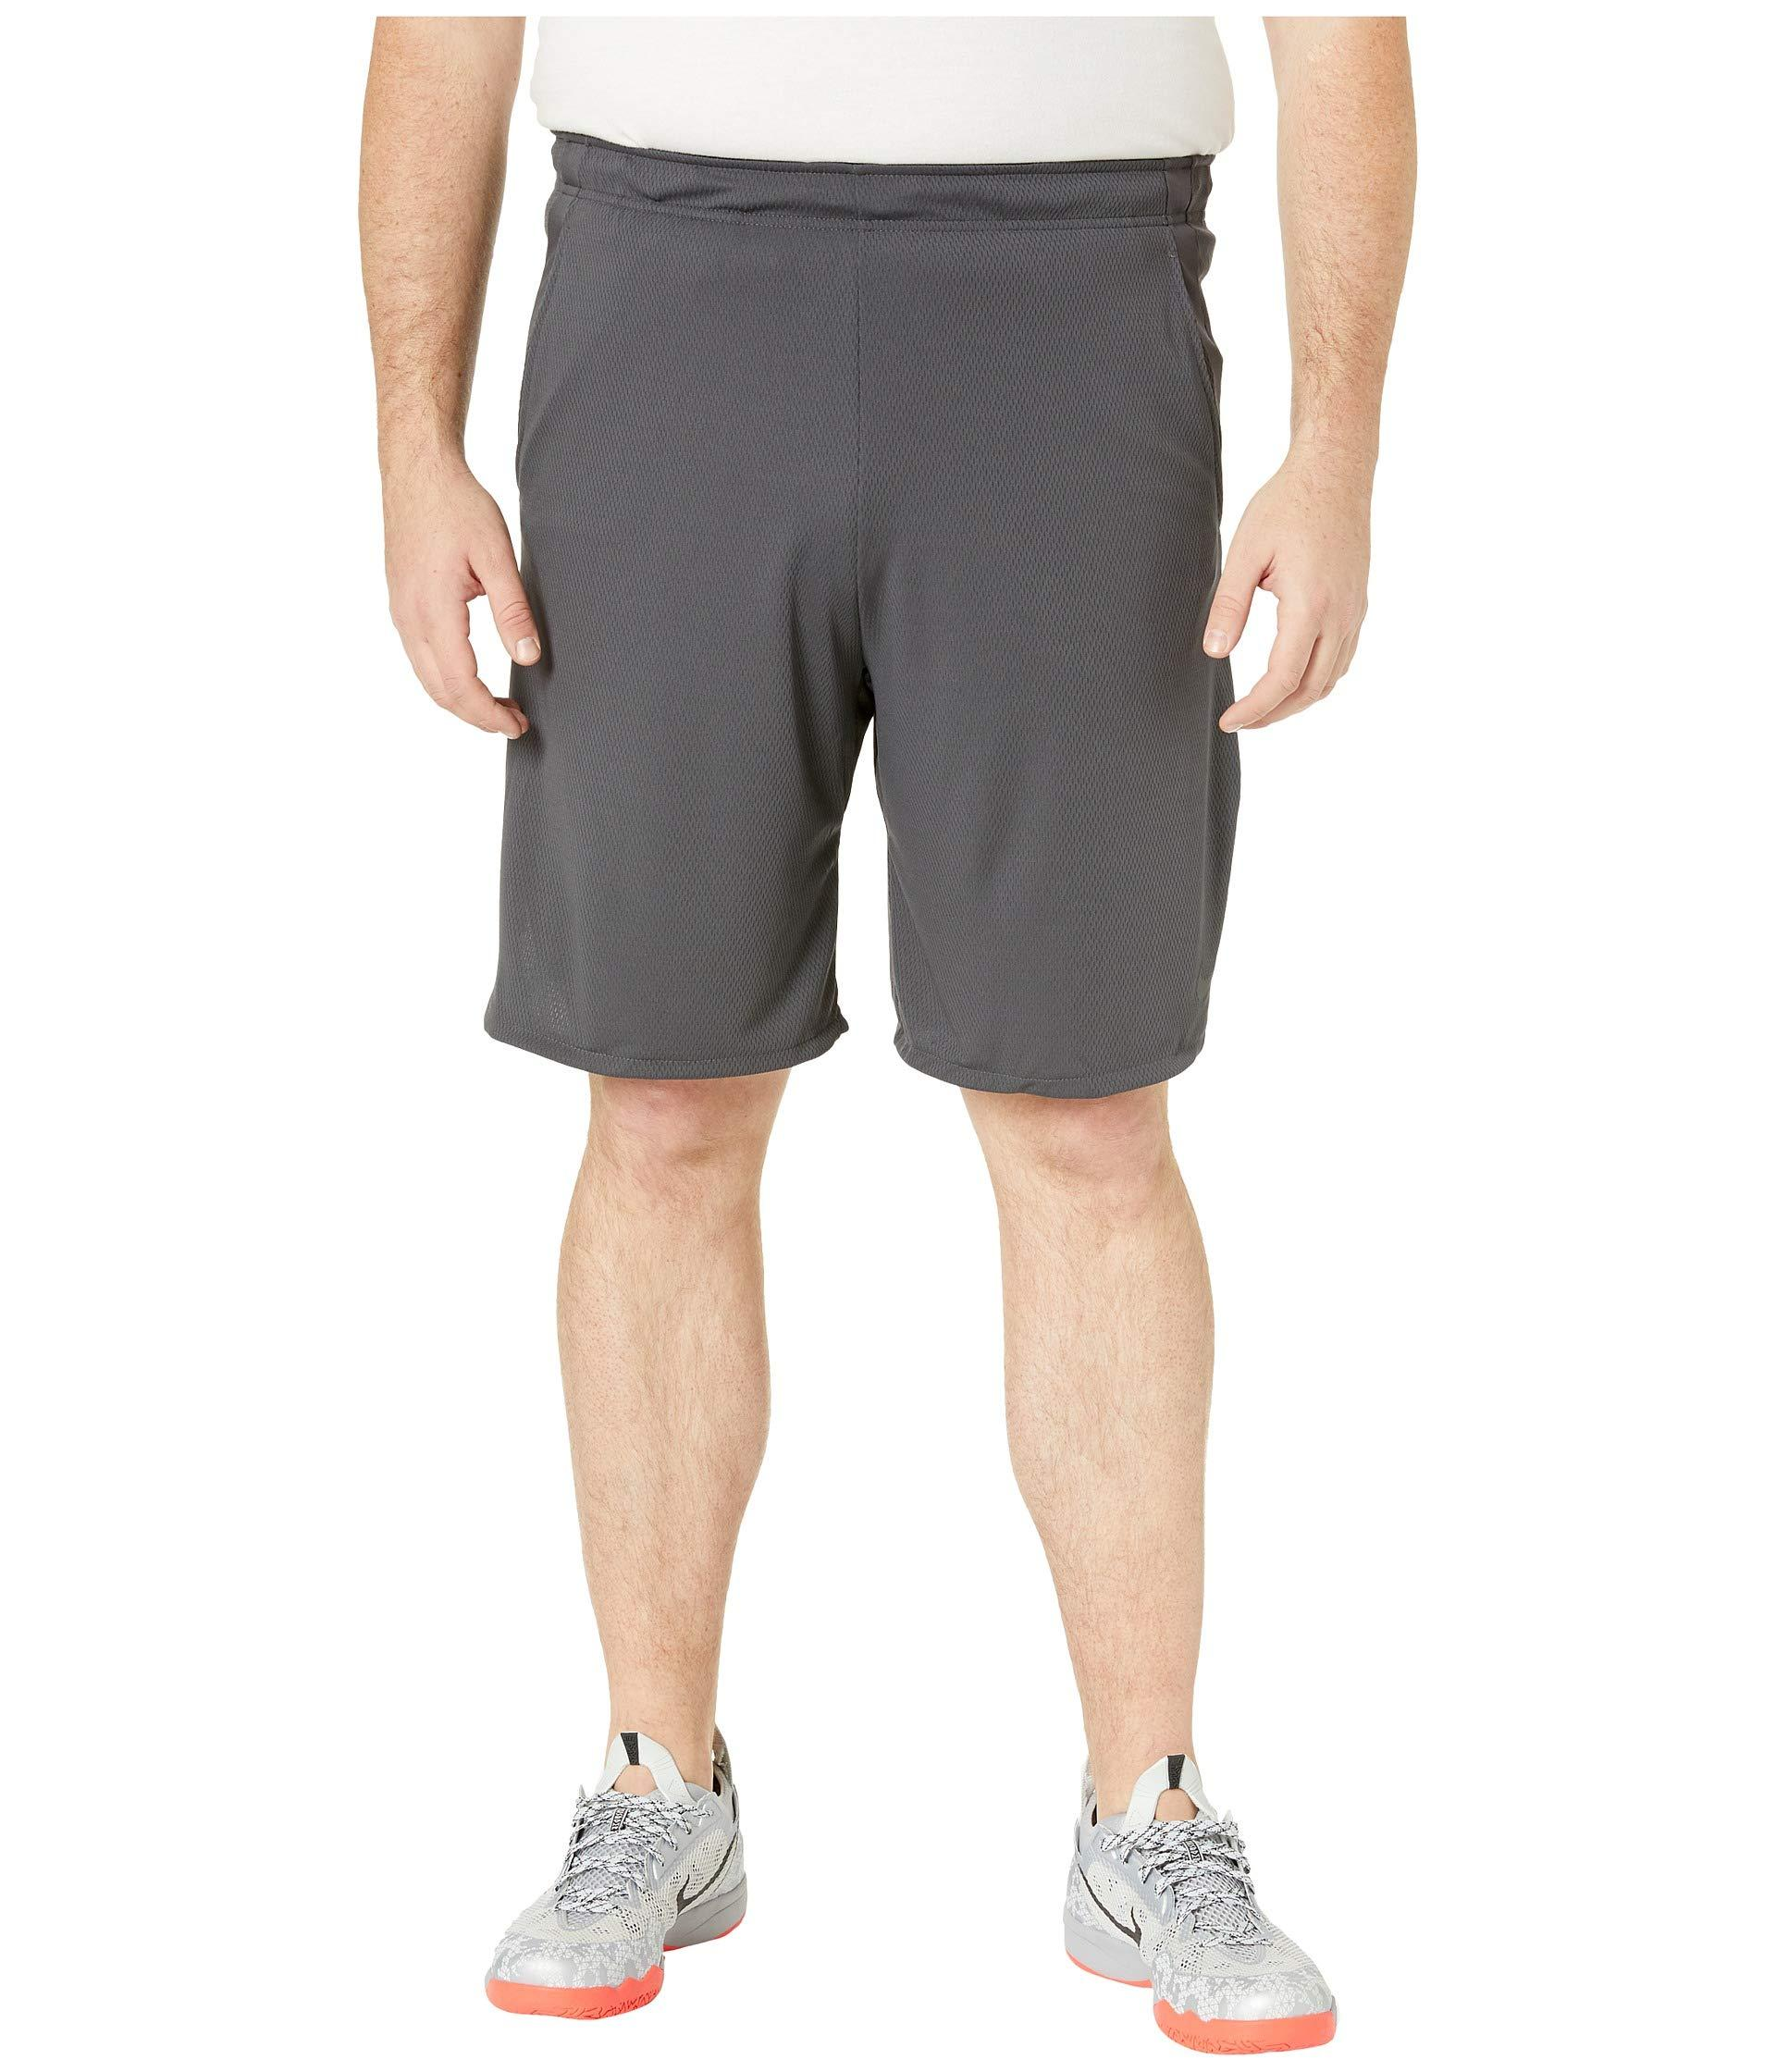 in stock a3003 6cdeb Nike. Gray Big Tall Dry Shorts 4.0 ...